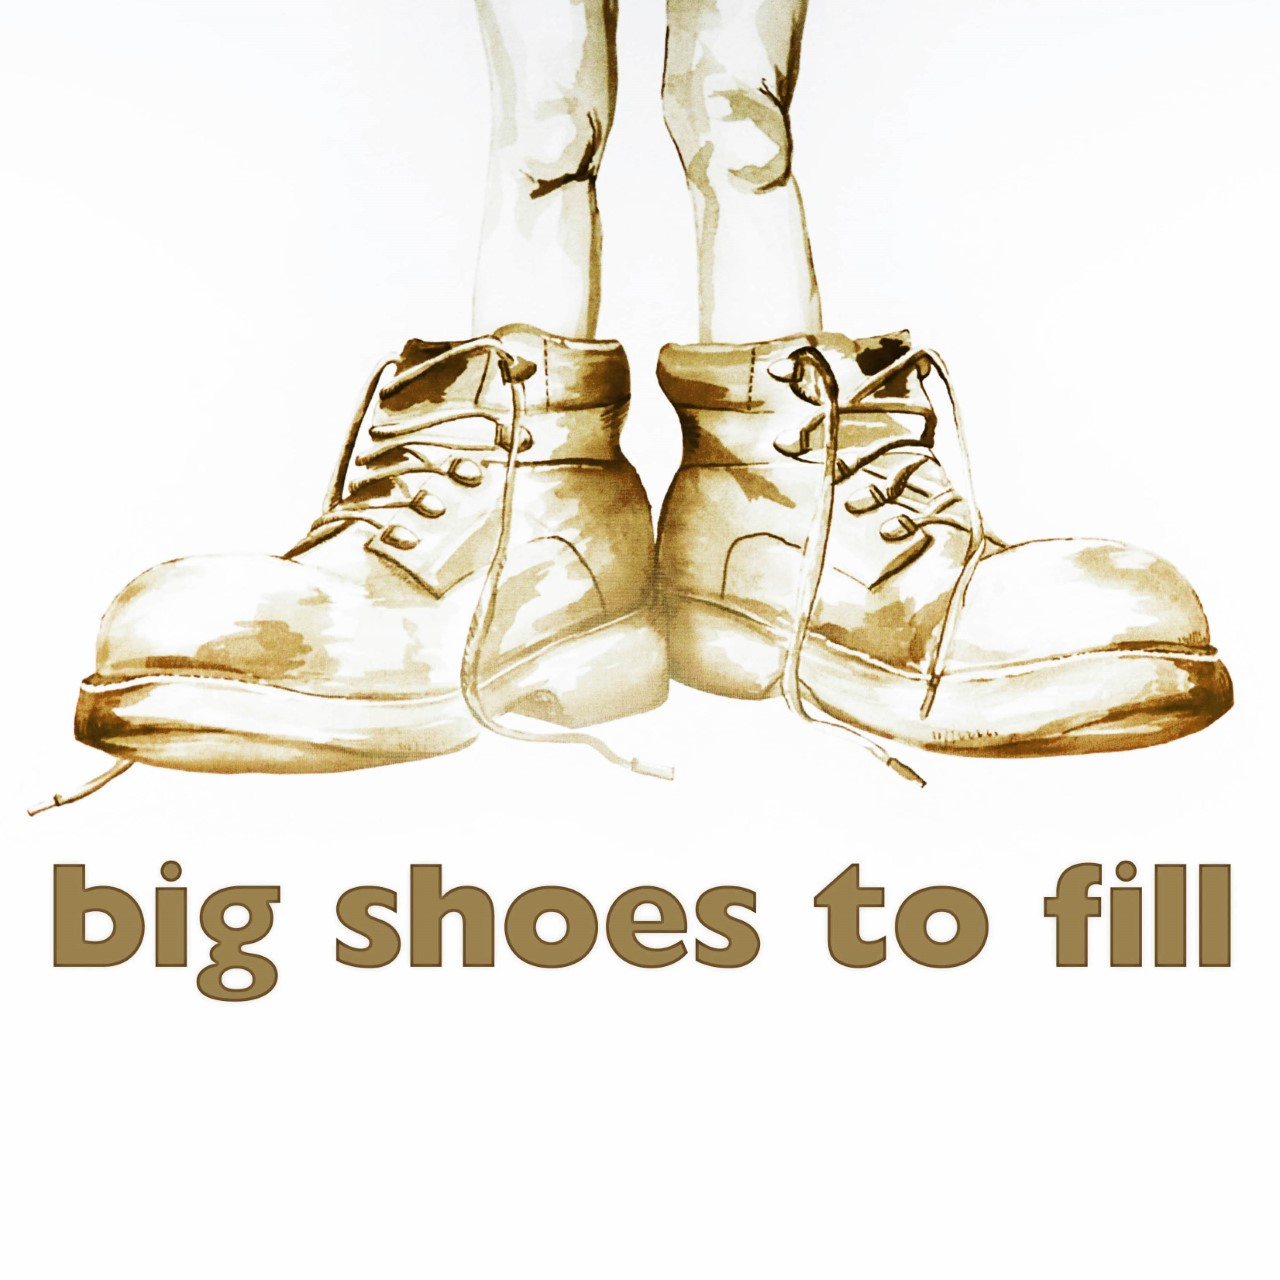 big shoes to fill Search, discover and share your favorite big shoes to fill gifs the best gifs are on giphy big shoes to fill 37546 gifs sort: relevant newest.